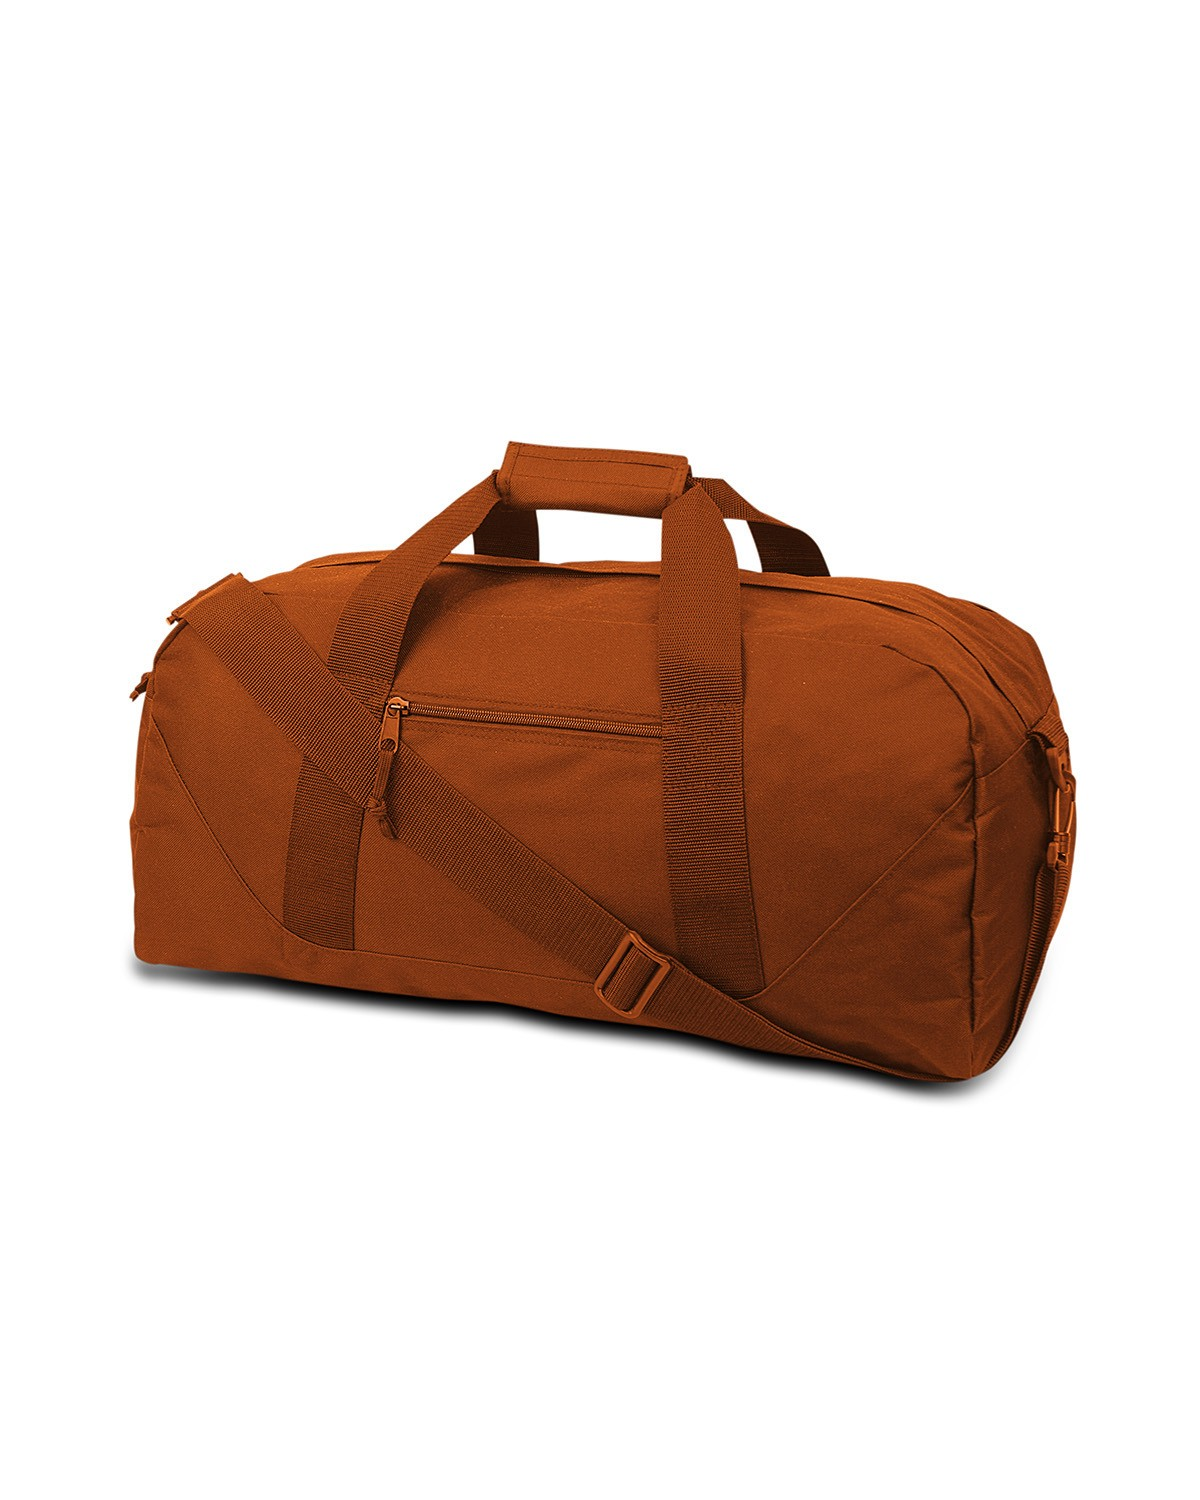 8806 Liberty Bags BURNT ORANGE